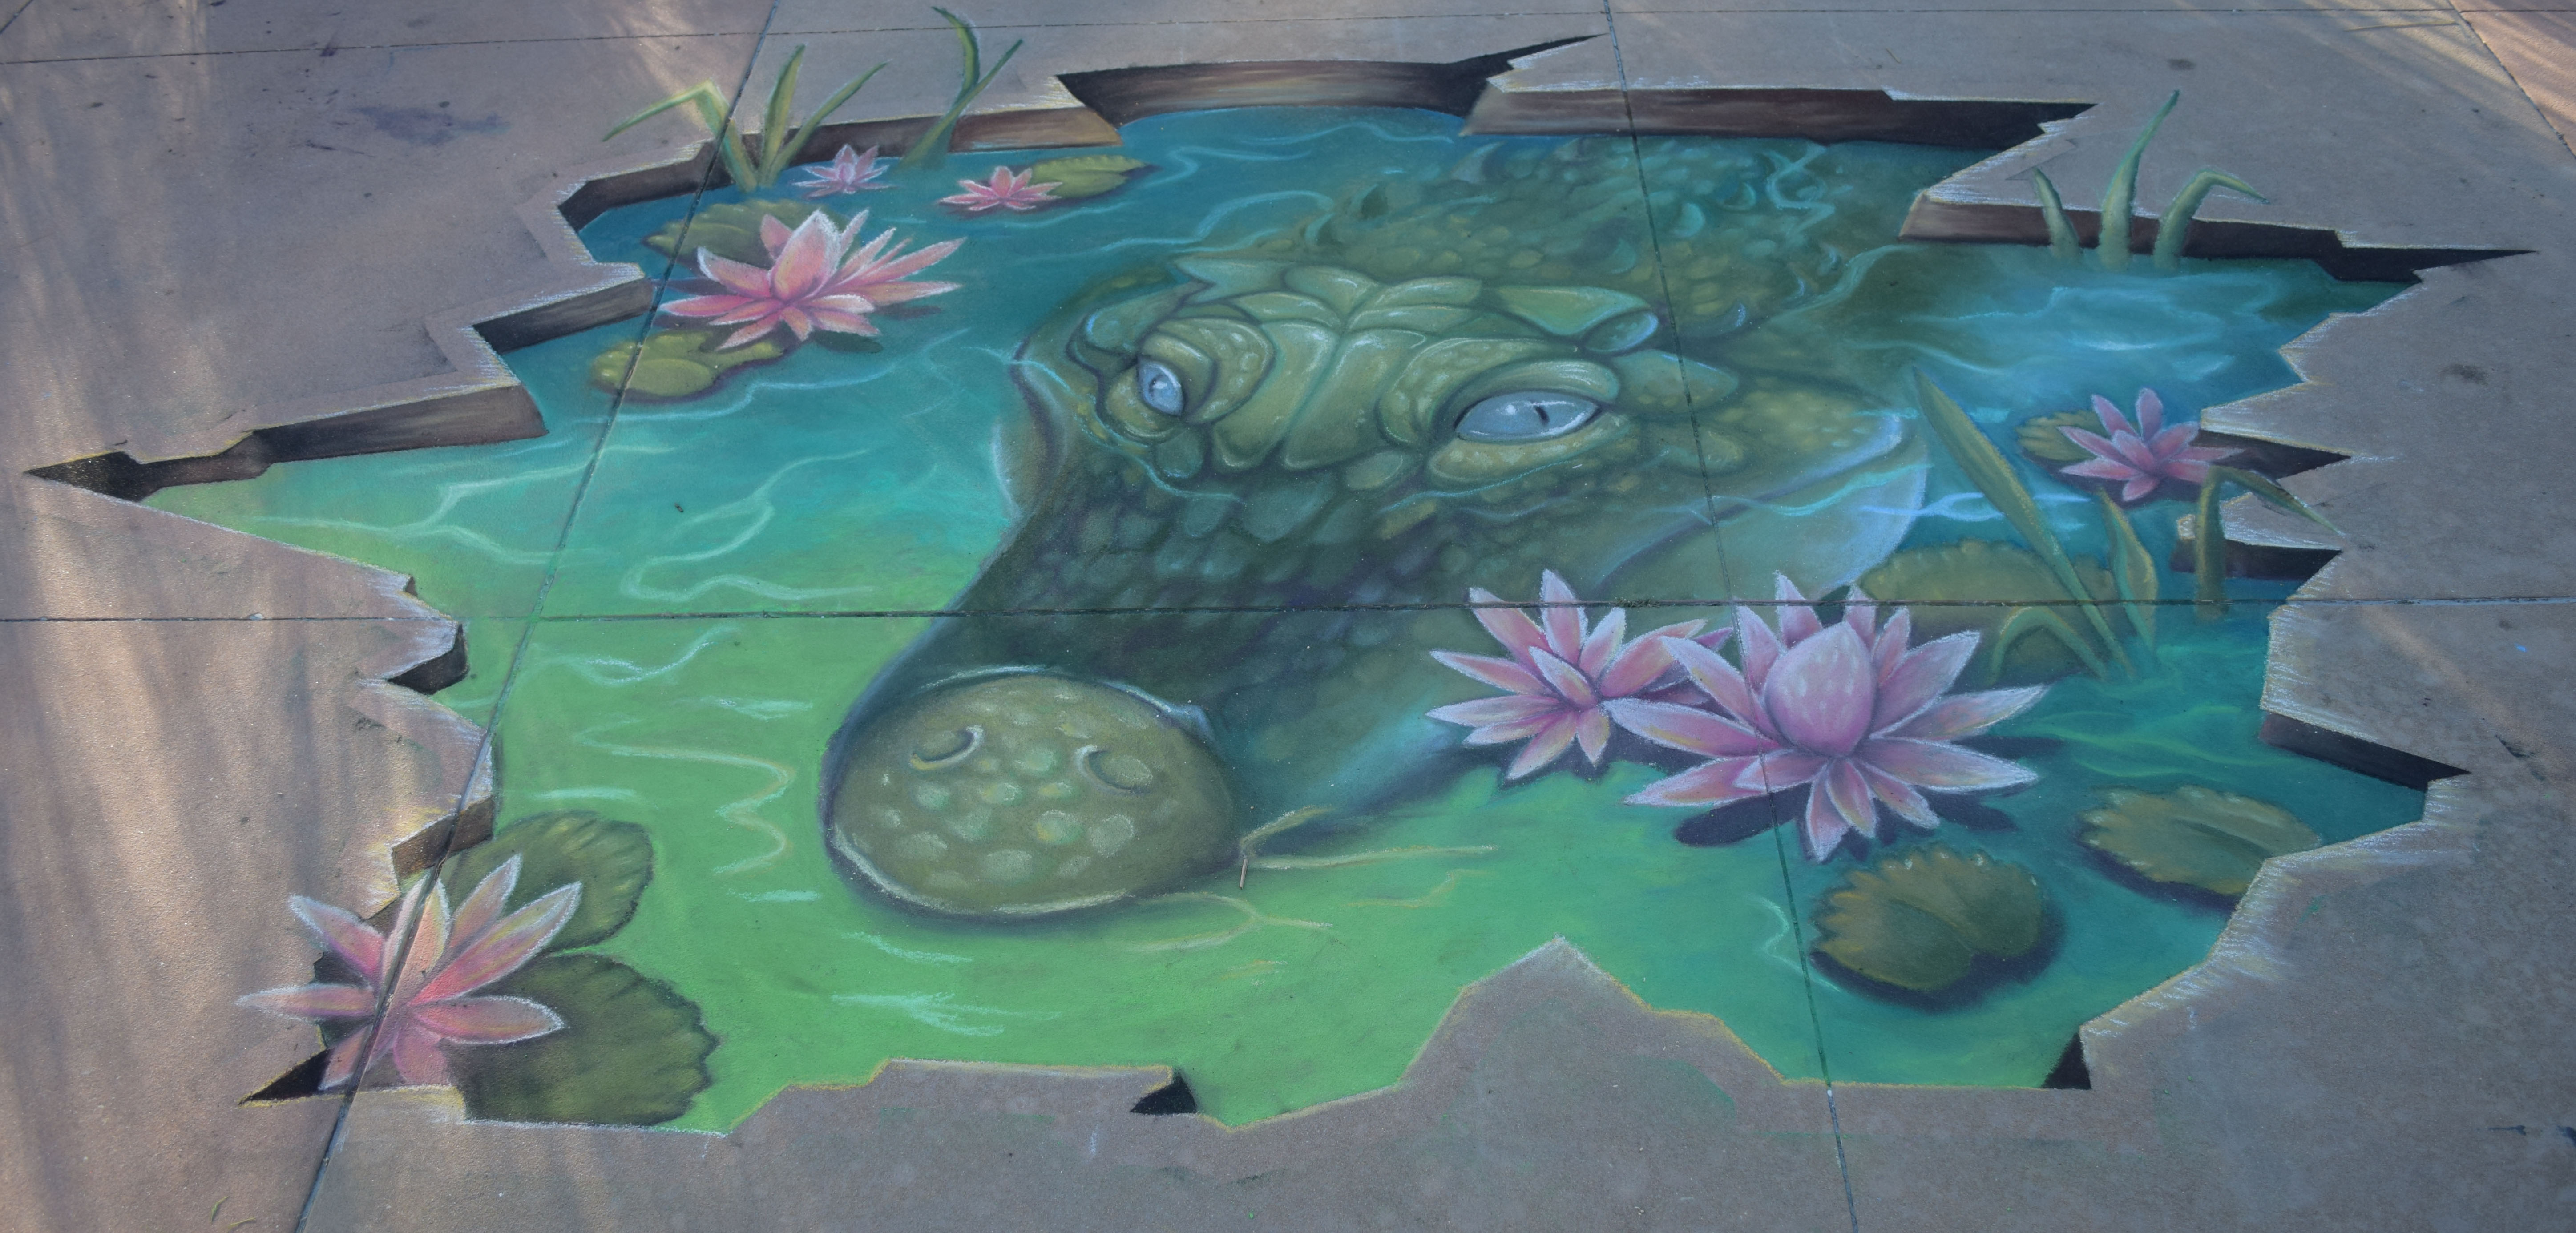 Fourth Annual Chalk Sidewalk Art Festival